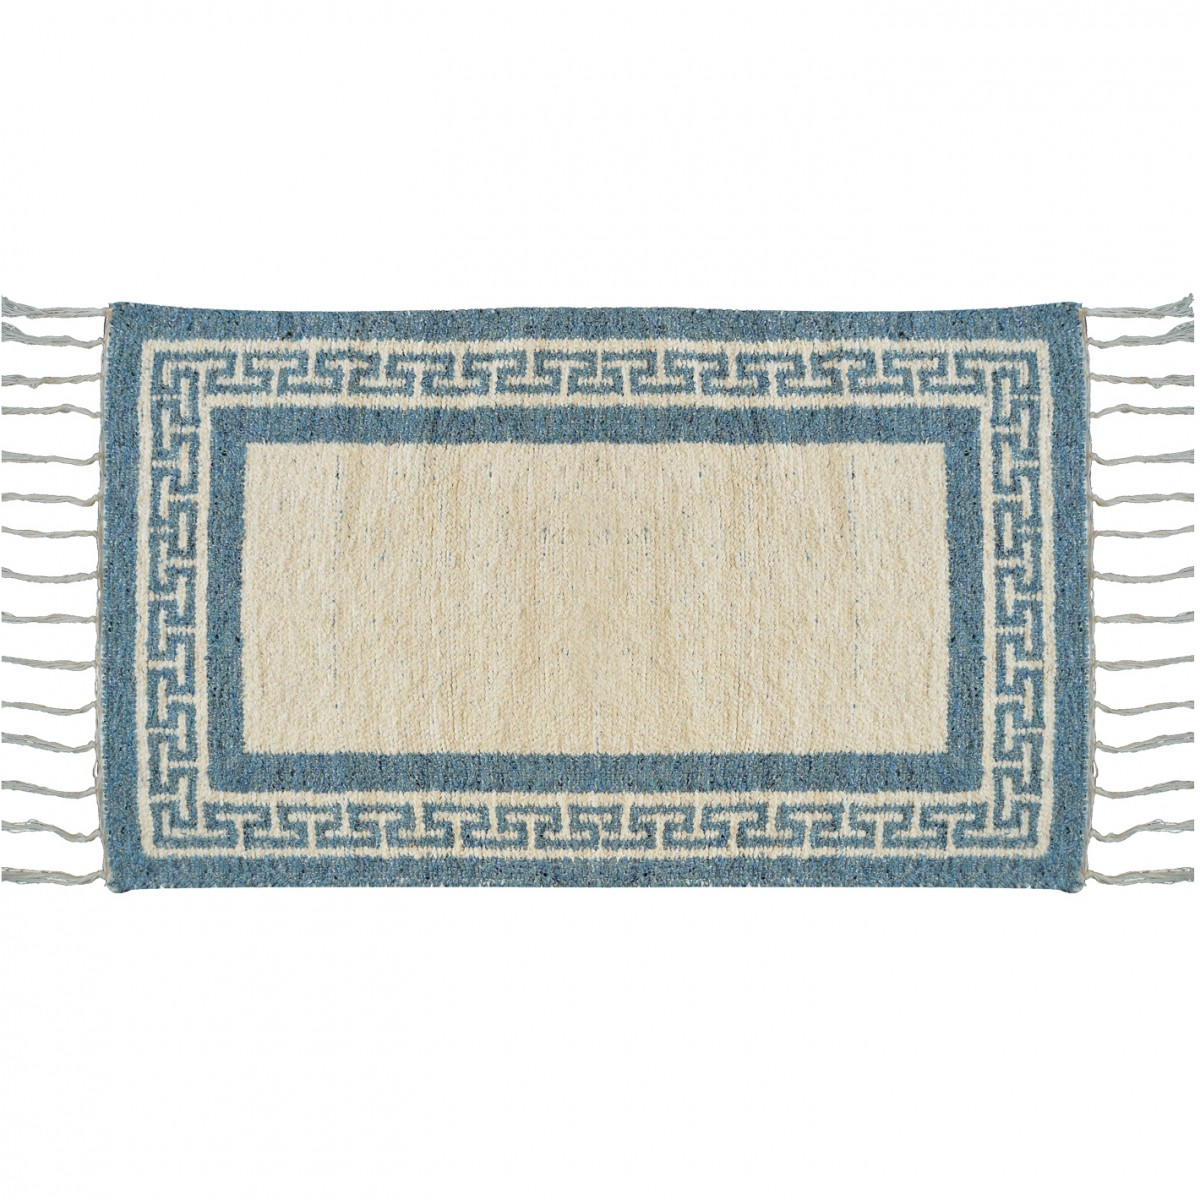 Greek Key Two Sided Cotton Summer Carpet Light Blue 1